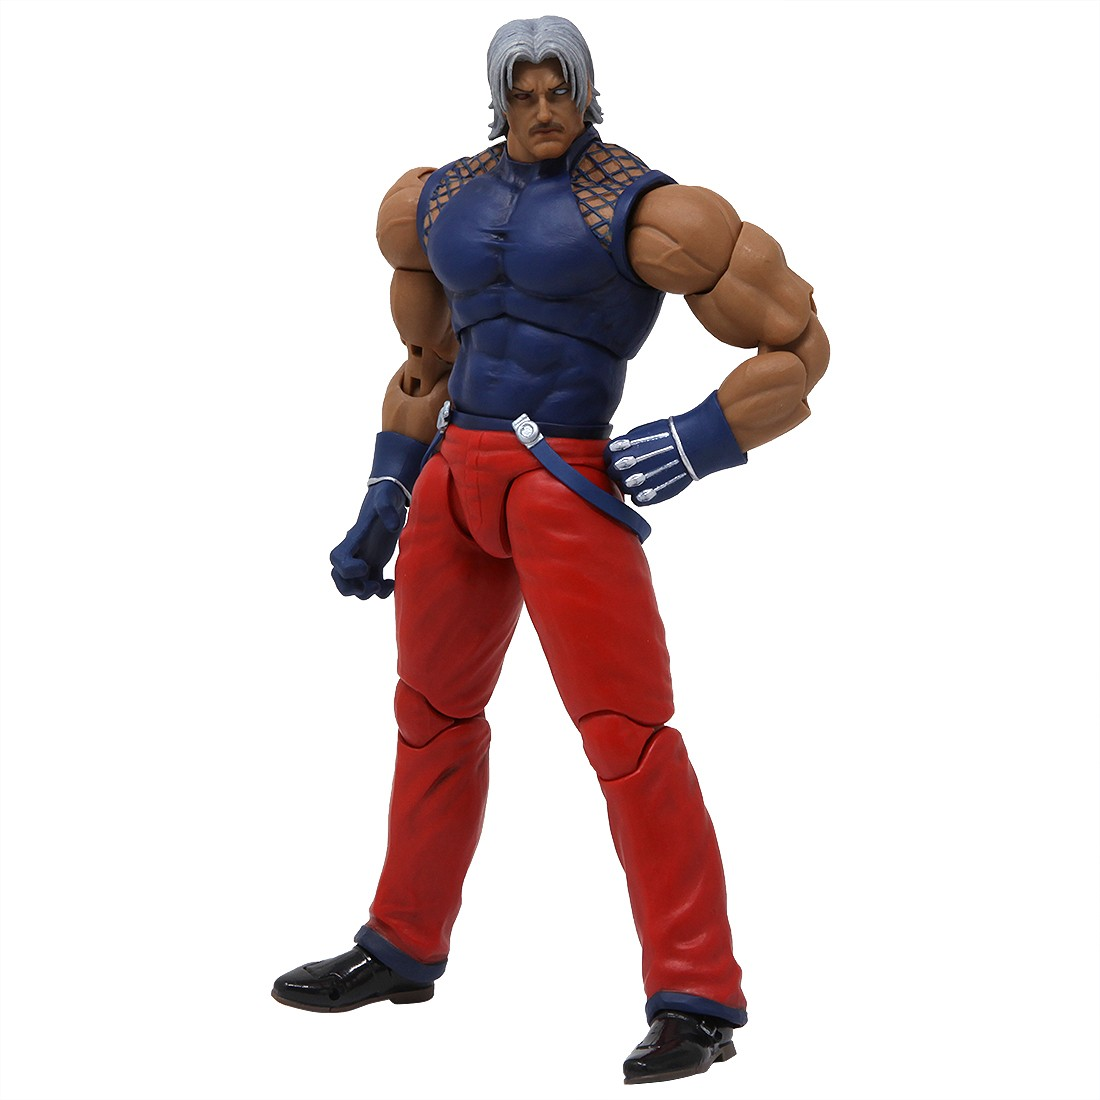 Storm Collectibles King Of Fighters 98 Omega Rugal 1/12 Action Figure (navy)